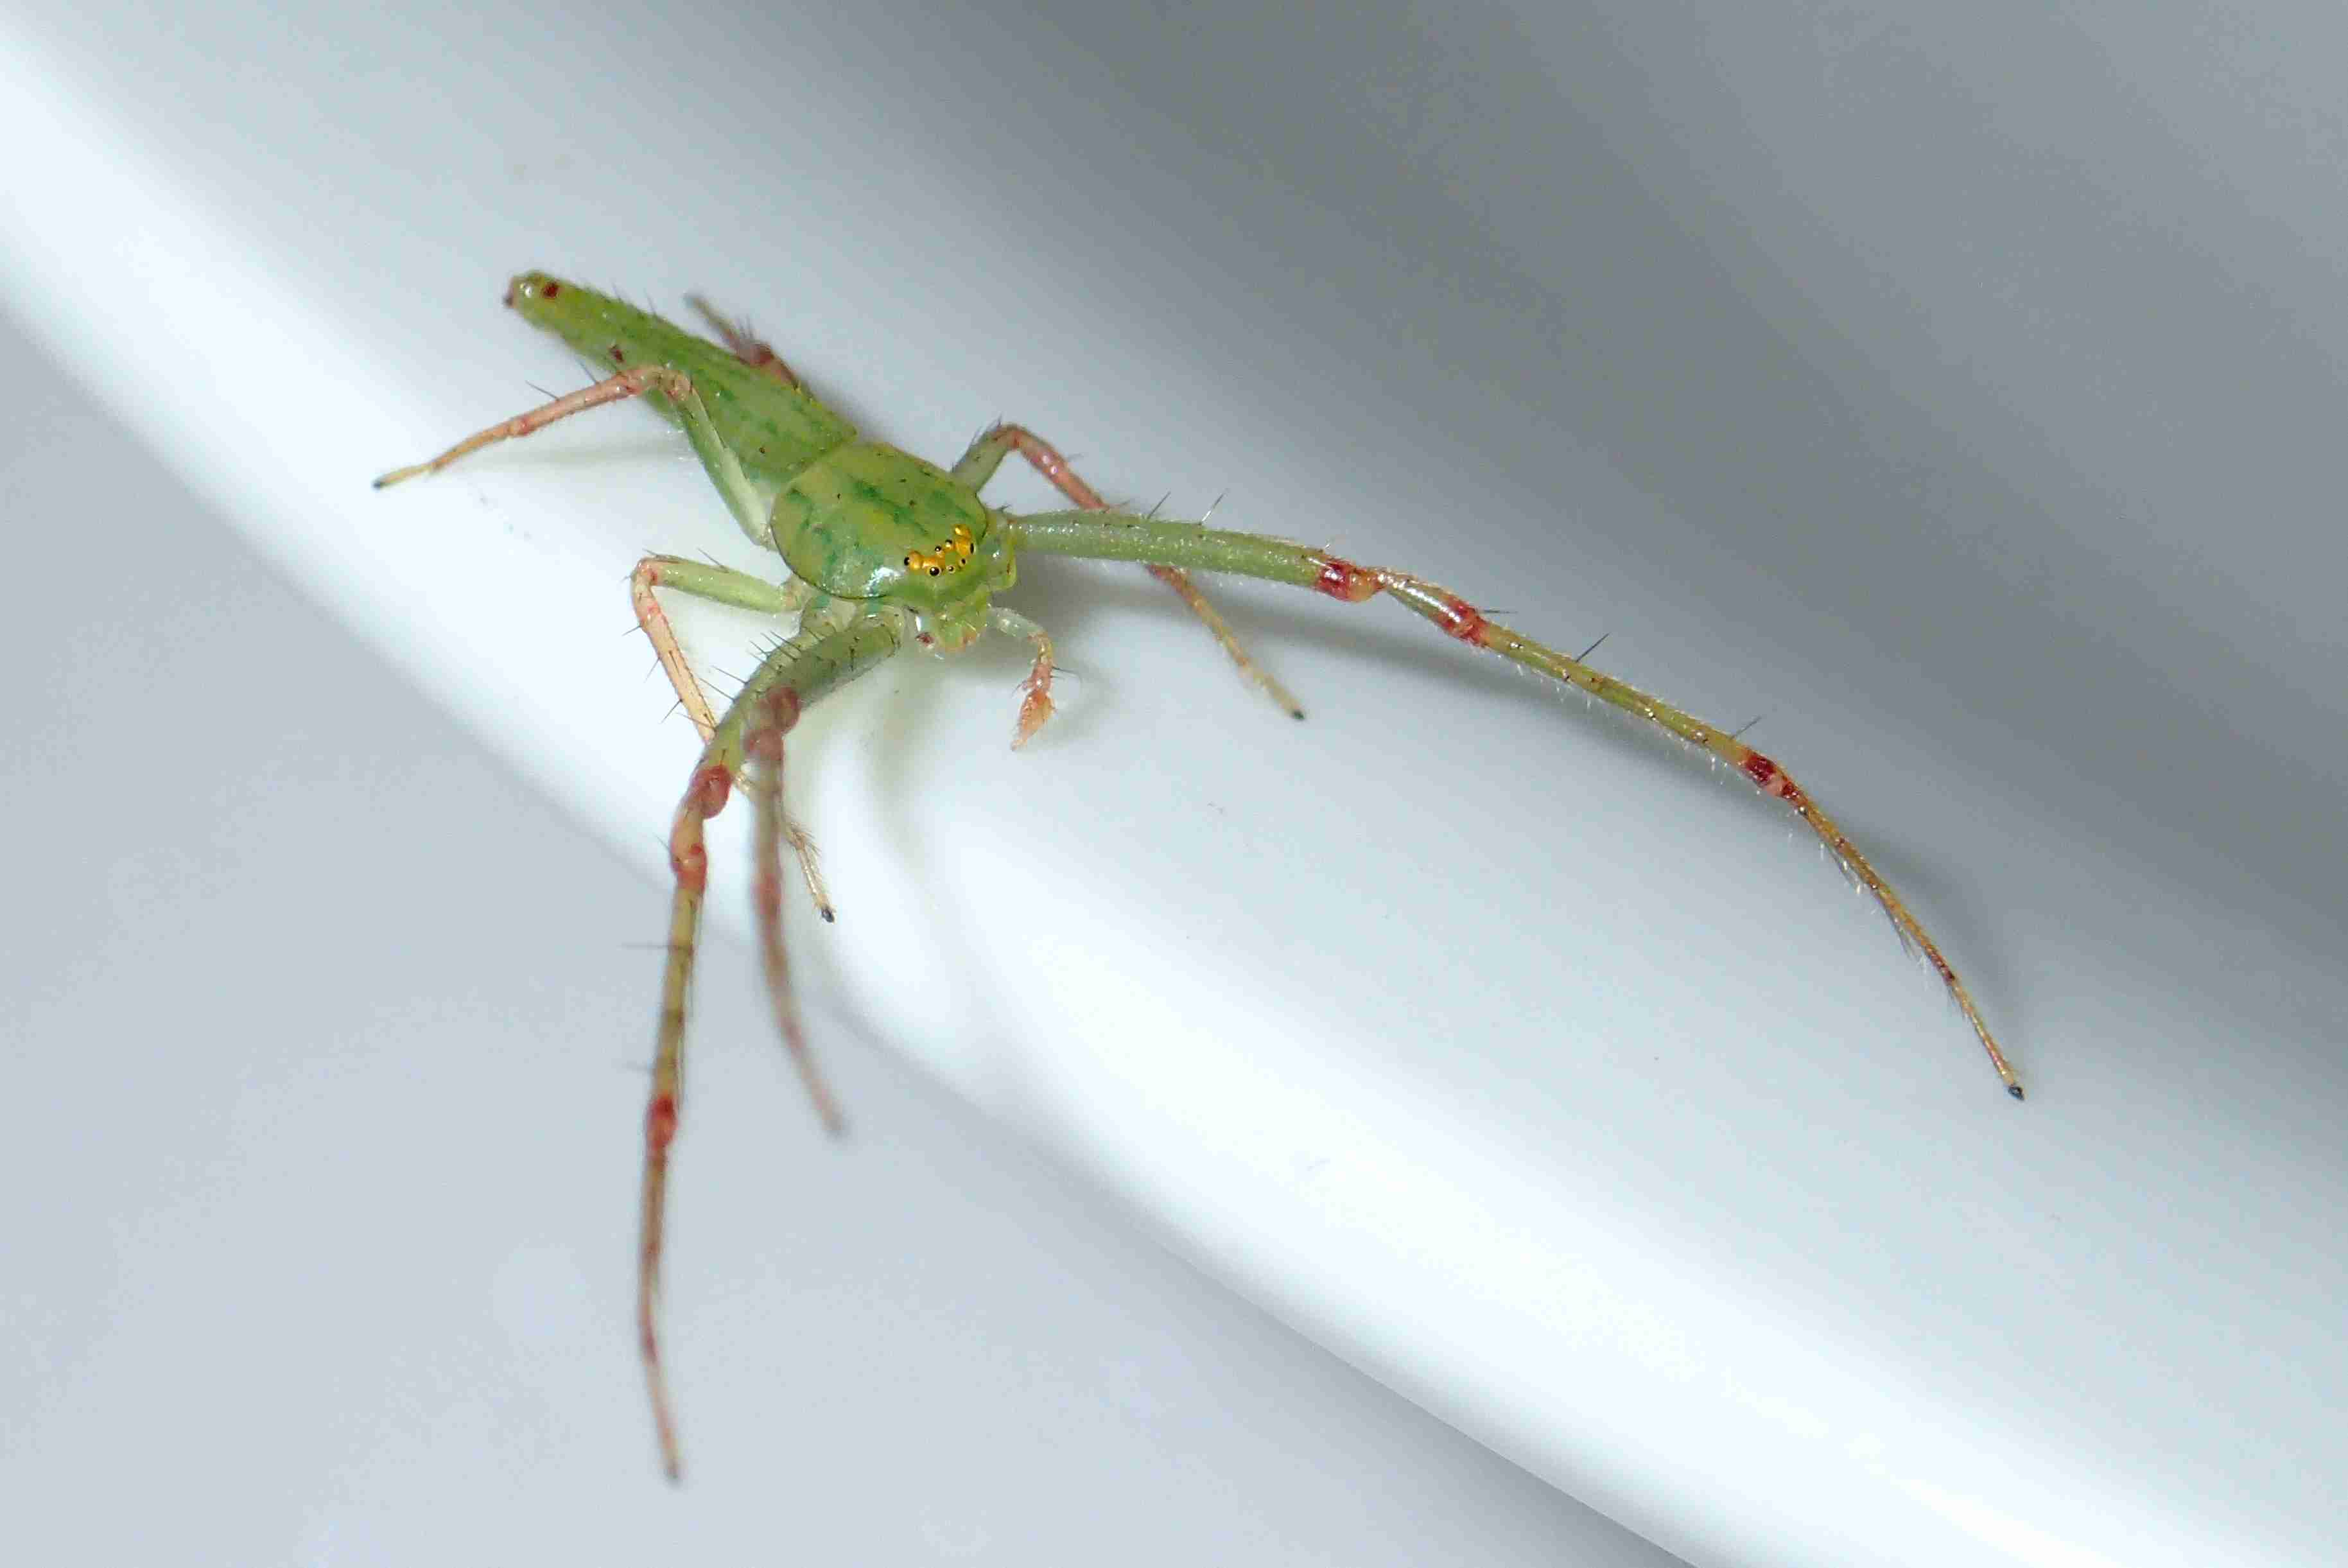 Picture of Oxytate (Grass Crab Spiders) - Male - Dorsal